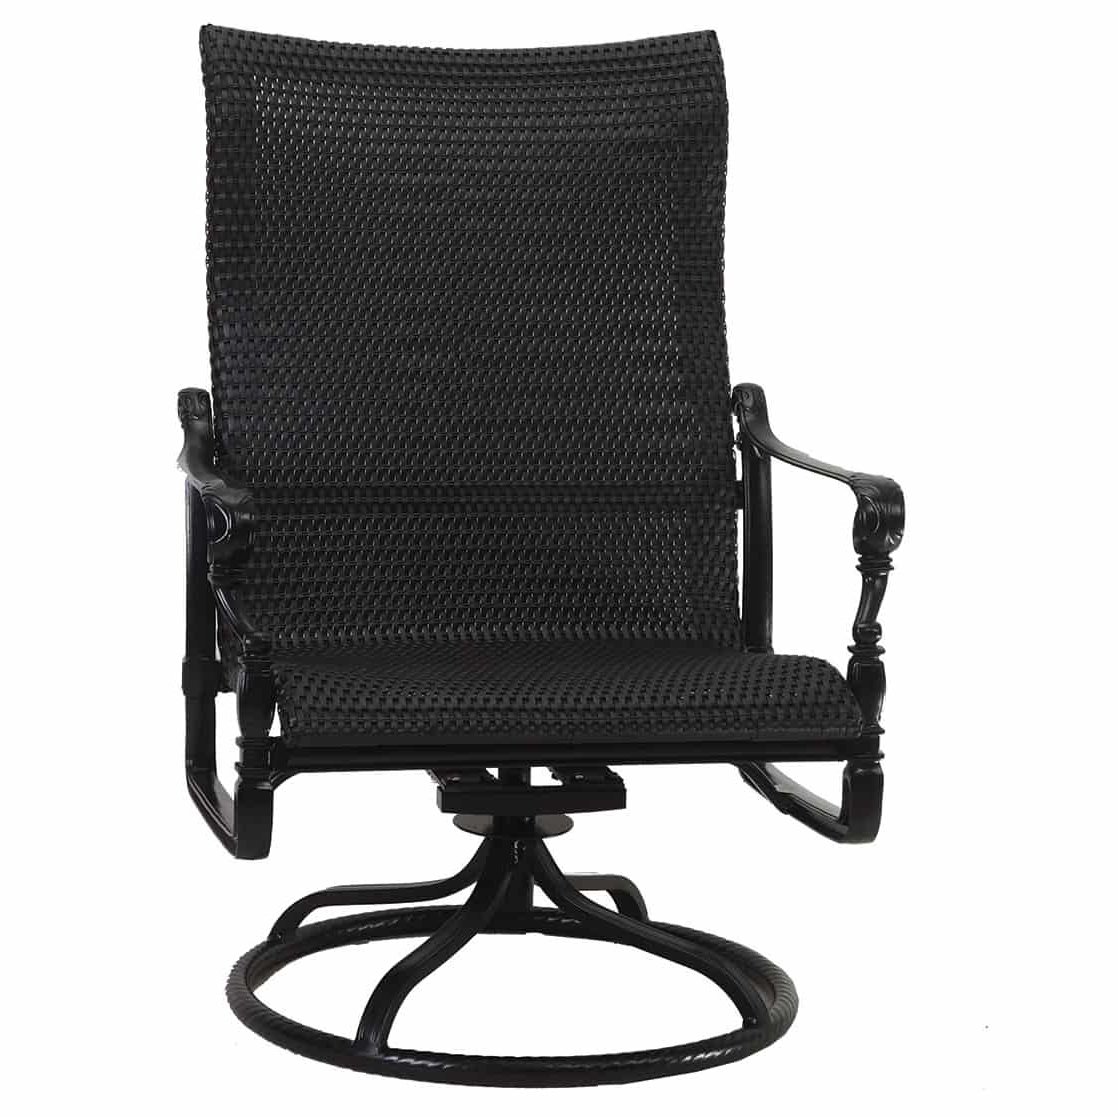 Most Recently Released Woven High Back Swivel Chairs Within Grand Terrace Woven High Back Swivel Rocker Lounge Chair (View 7 of 30)